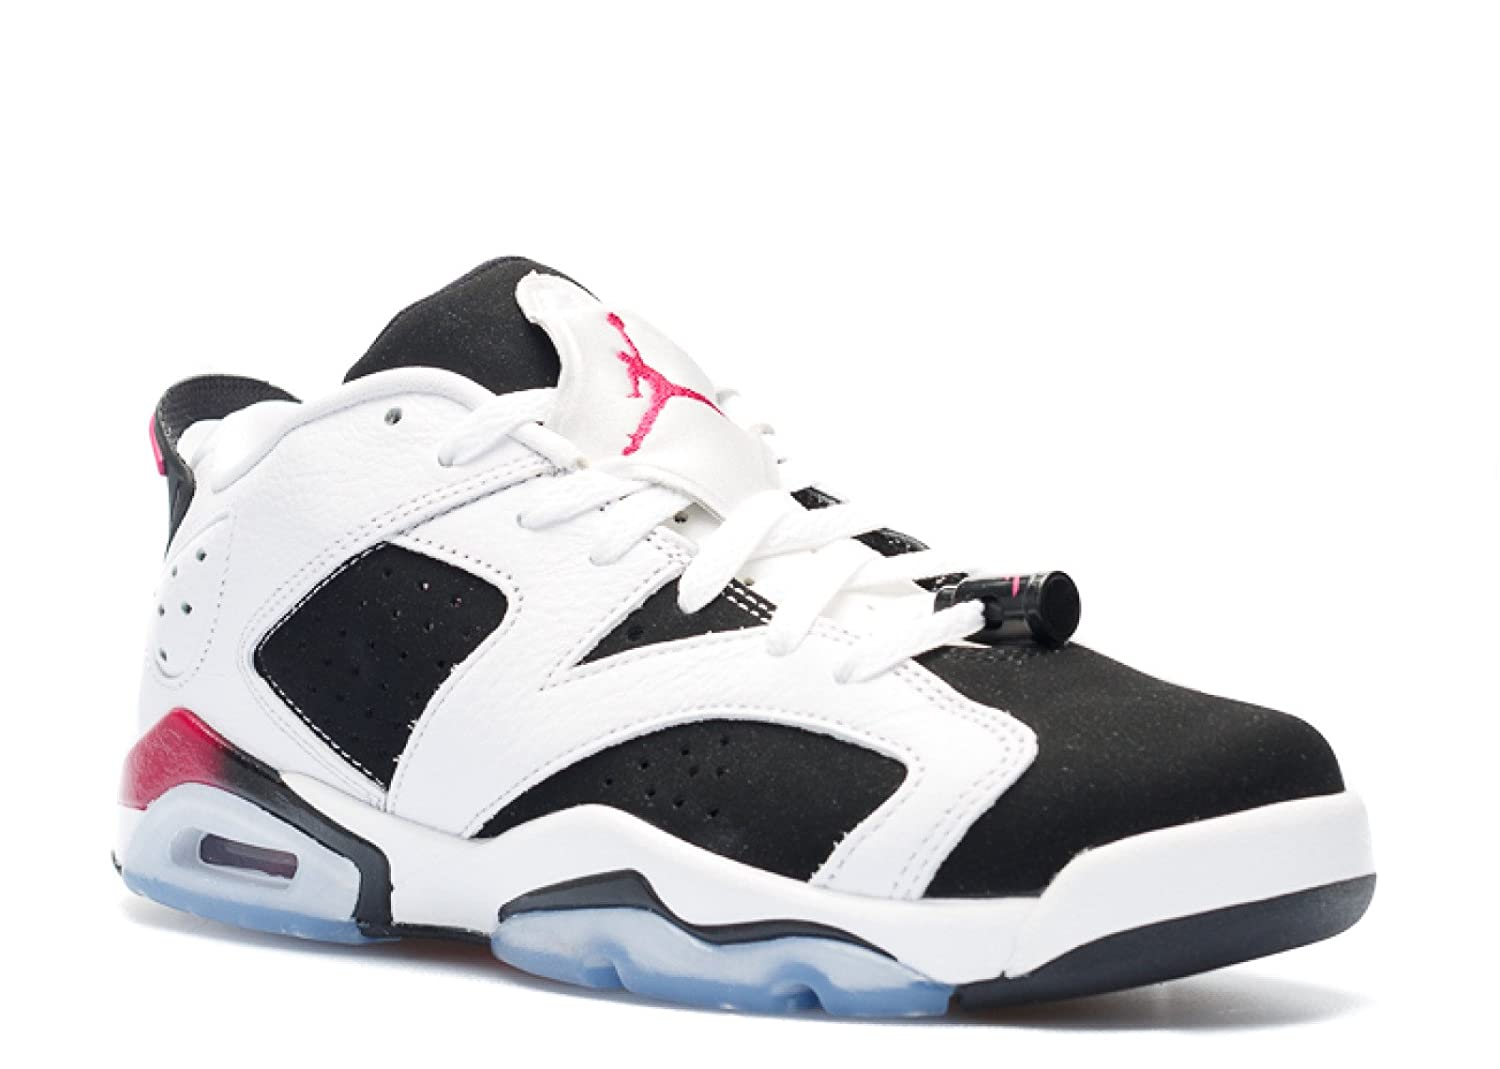 wholesale dealer 43e8e 07d20 Nike Air Jordan 6 Retro Low GG, Youth Basketball Shoes, White/Sport Fuchsia  - Black